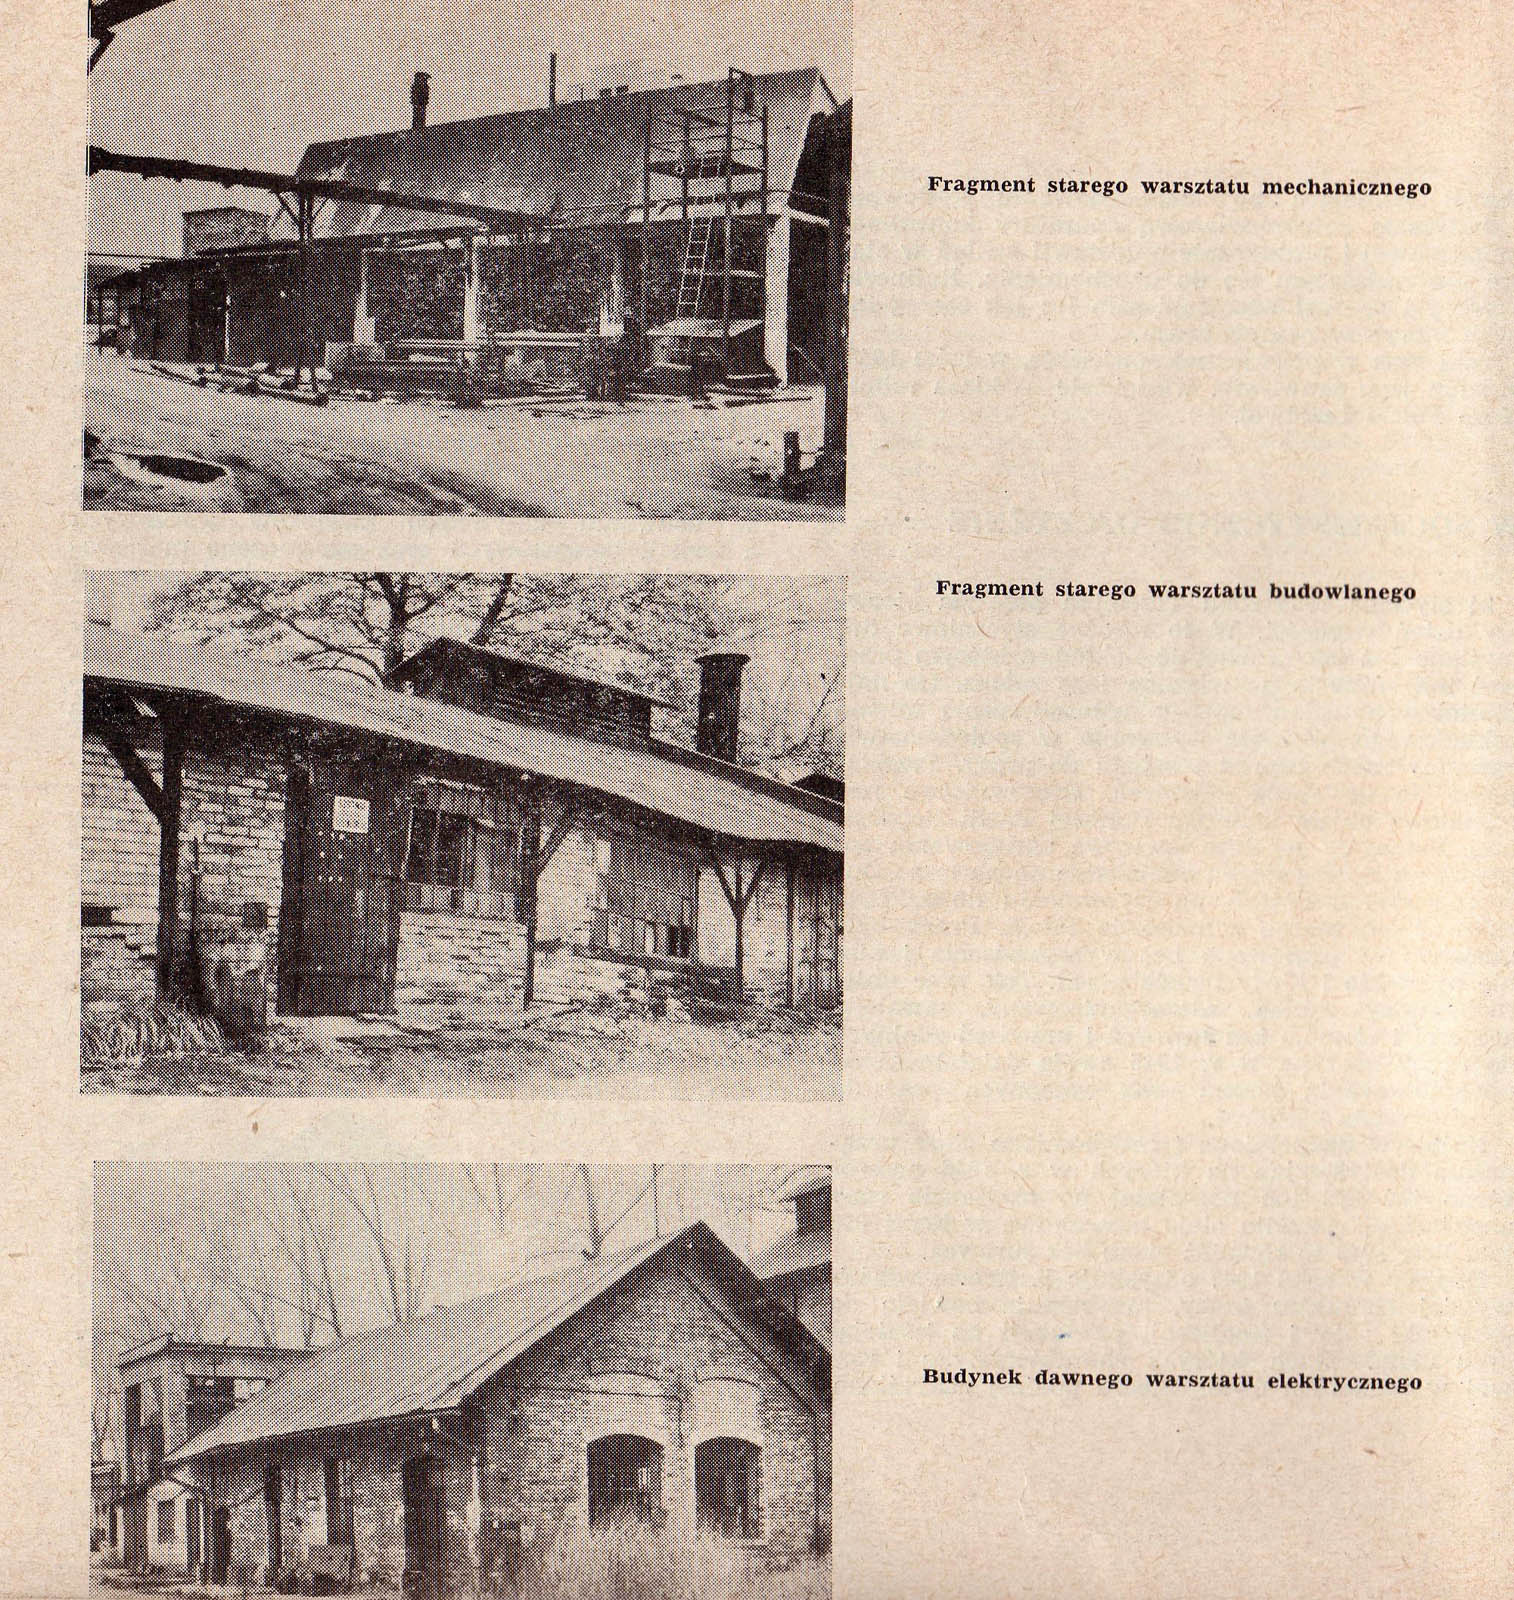 Photographs of Trzebinia refinery buildings 1964 3